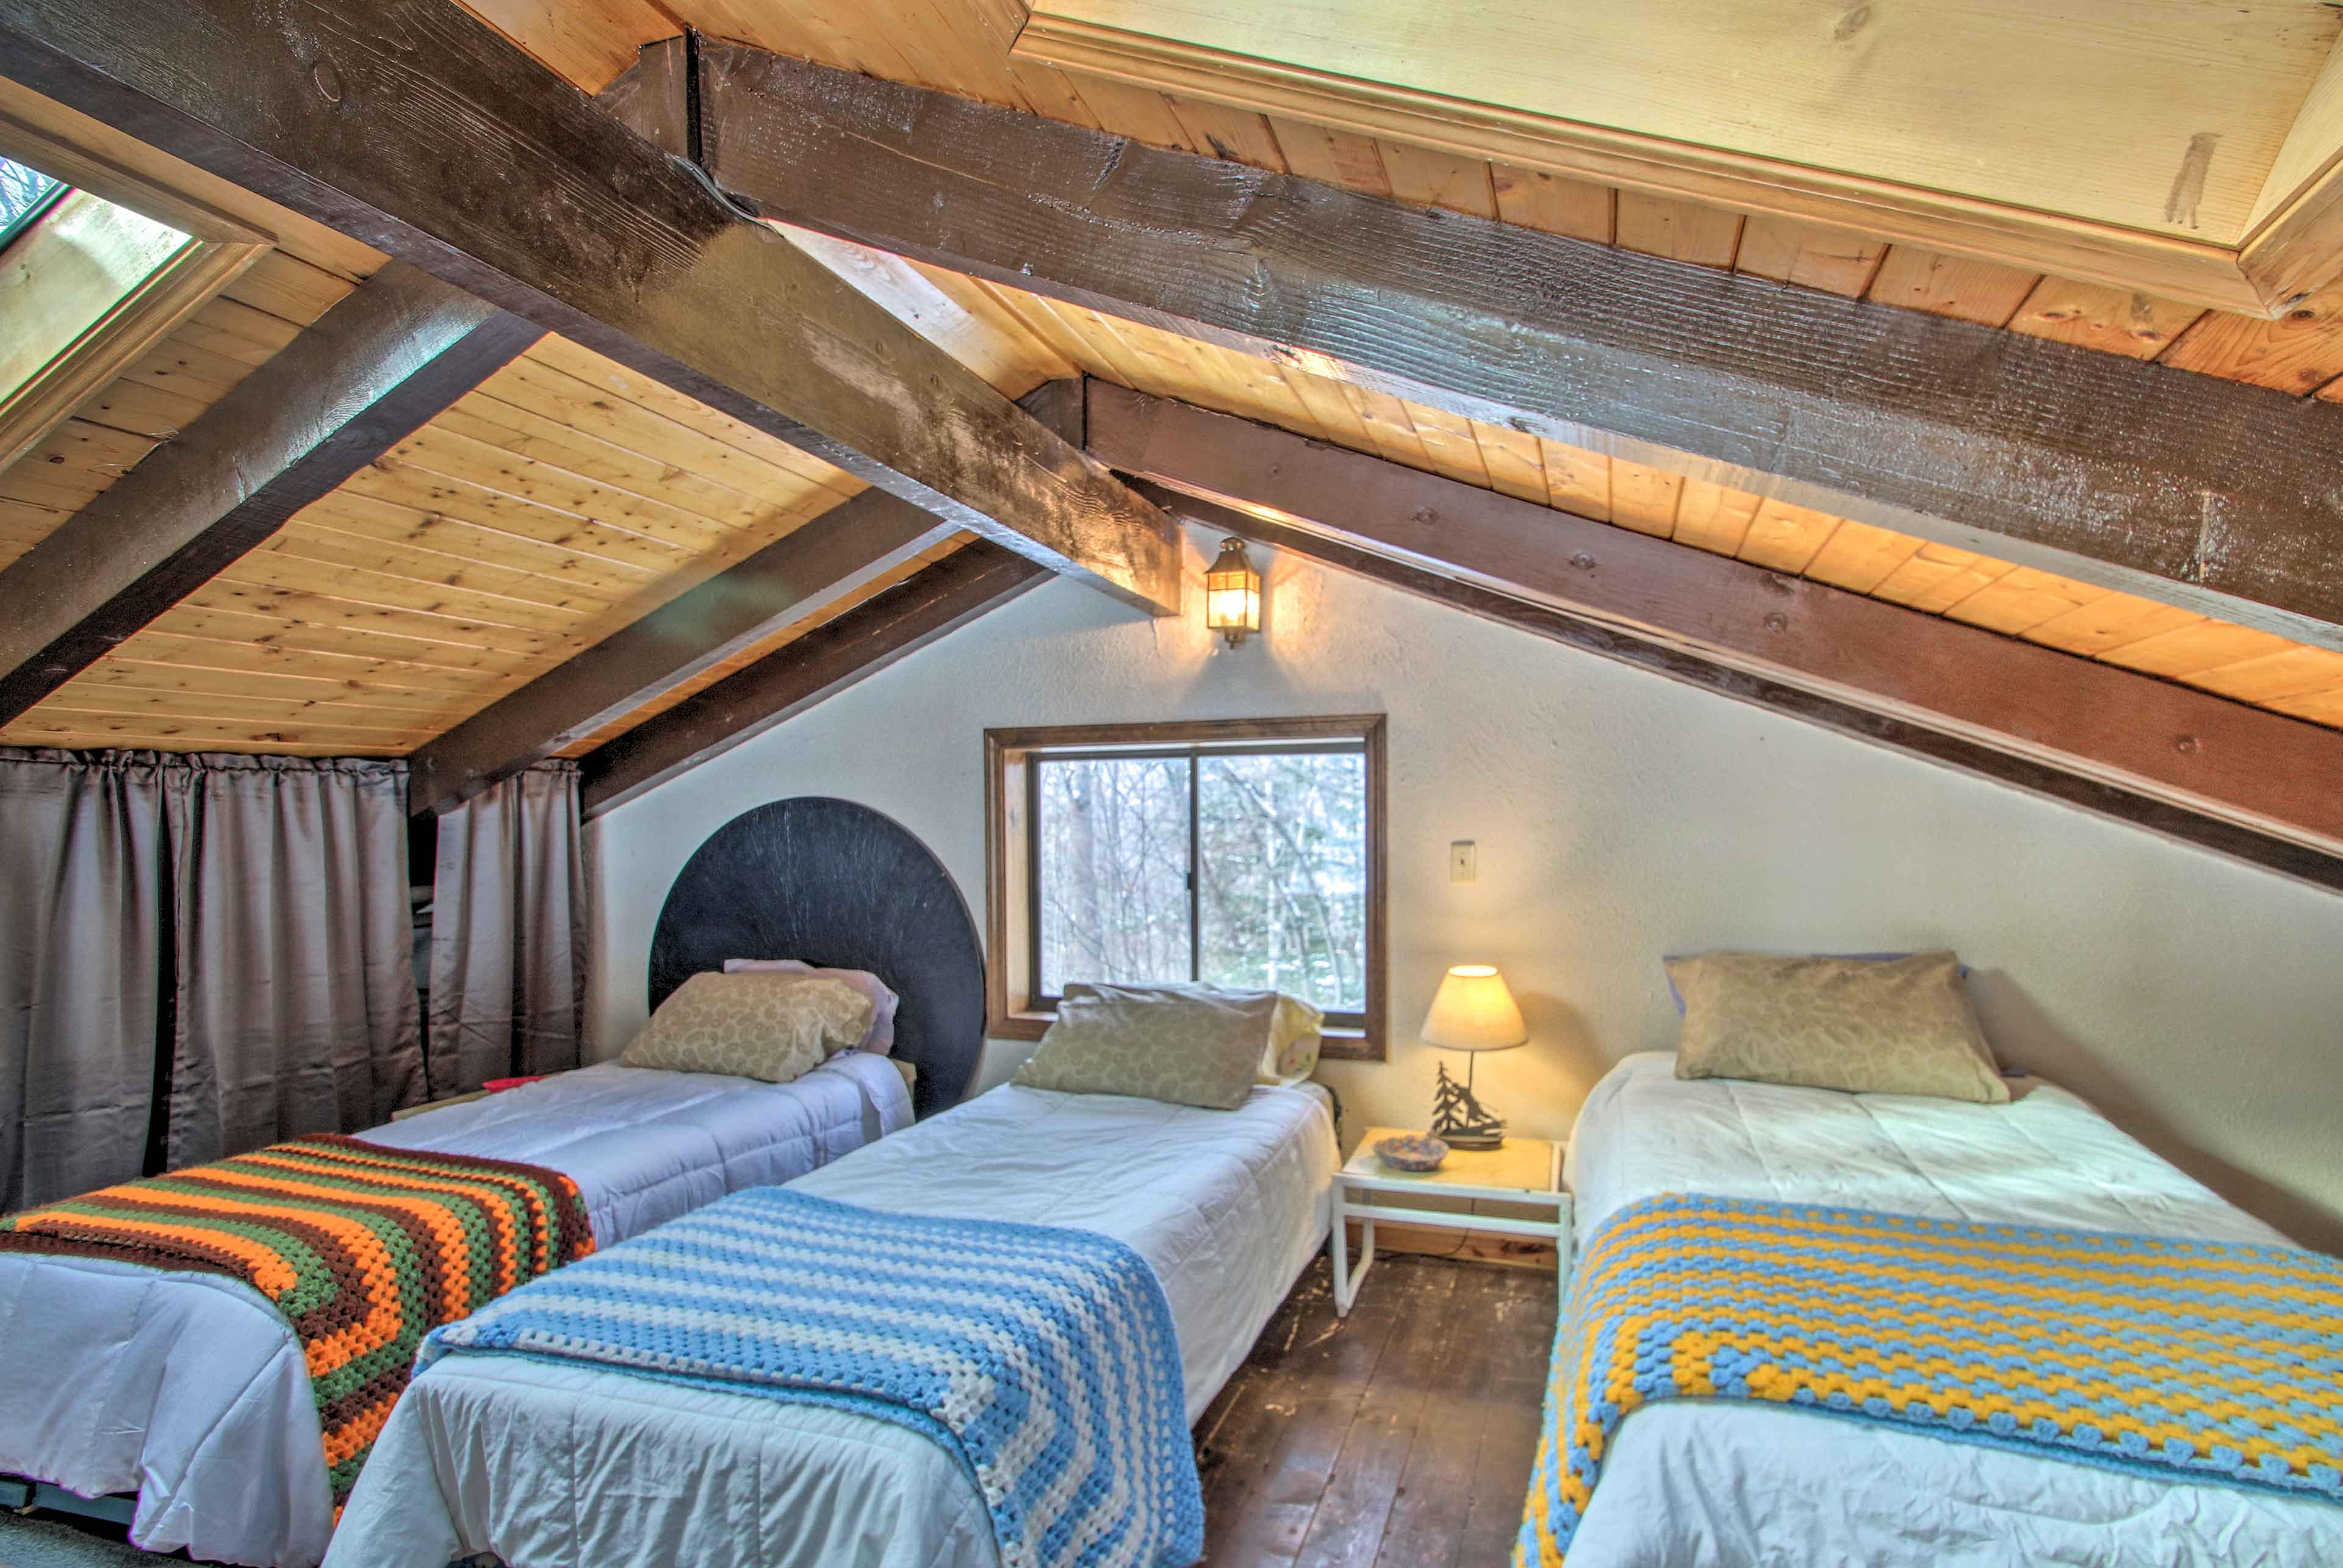 The loft has 3 twin beds.